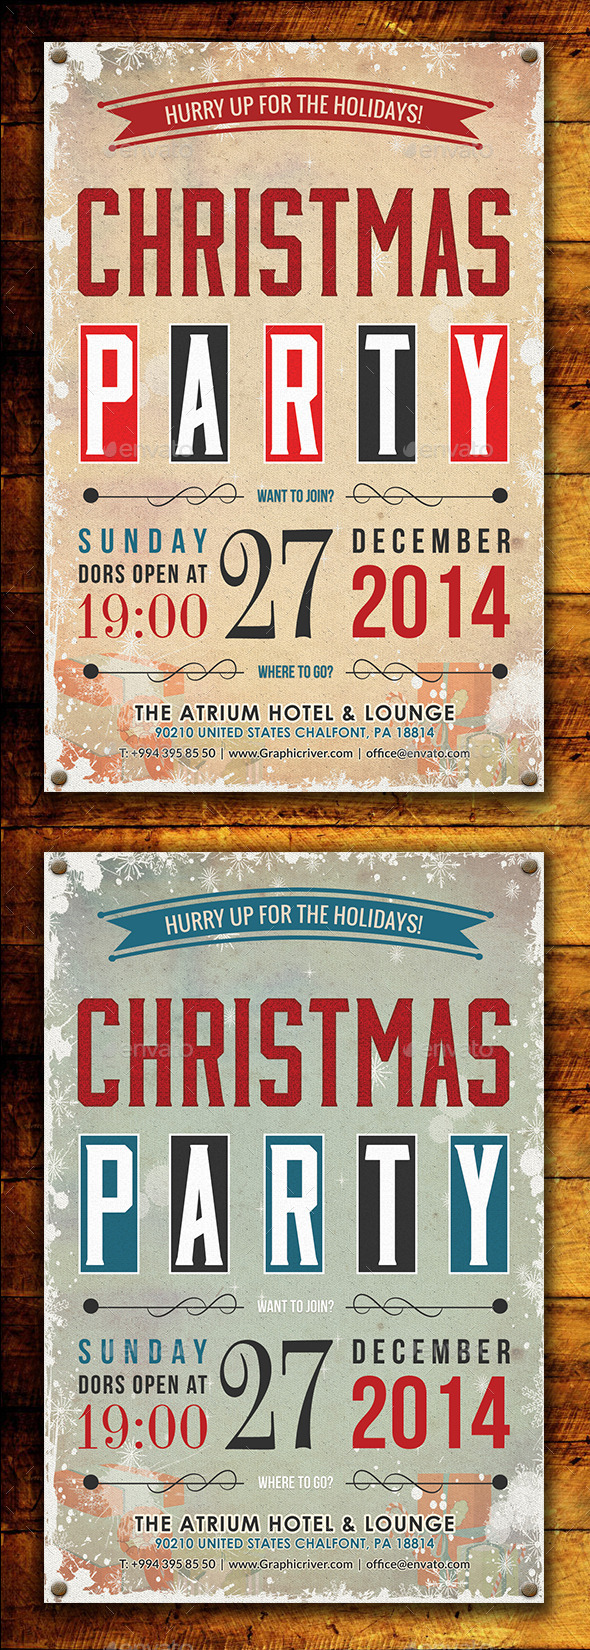 GraphicRiver Christmas Party Flyer Template 9279999